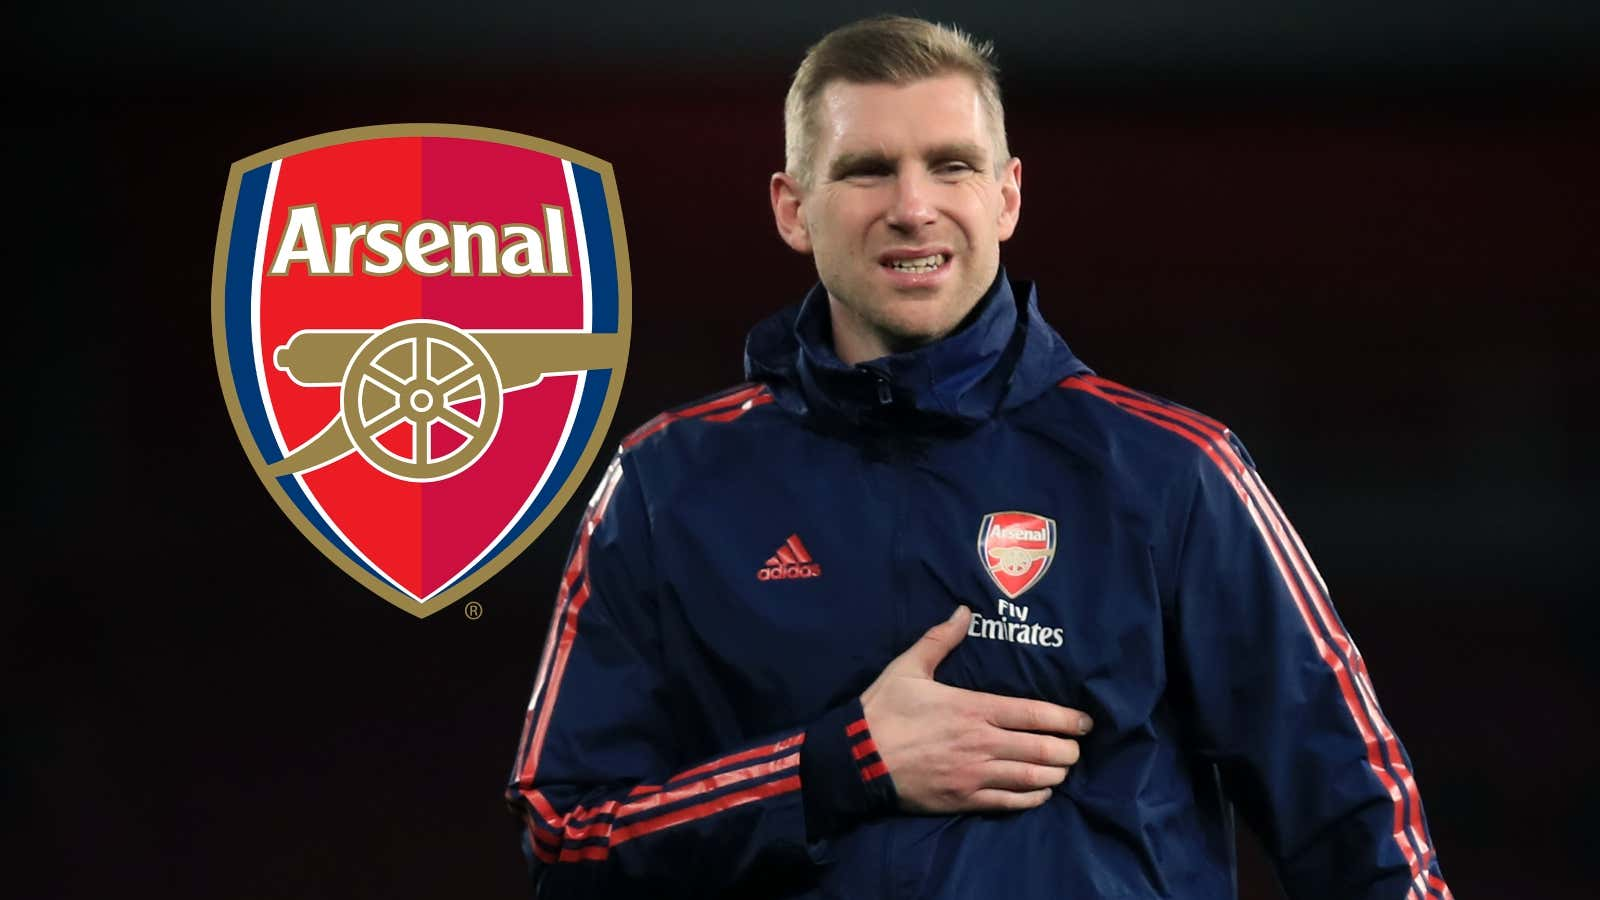 Inside Mertesacker's Arsenal academy revolution: From matching Chelsea to overseeing transfers | Goal.com